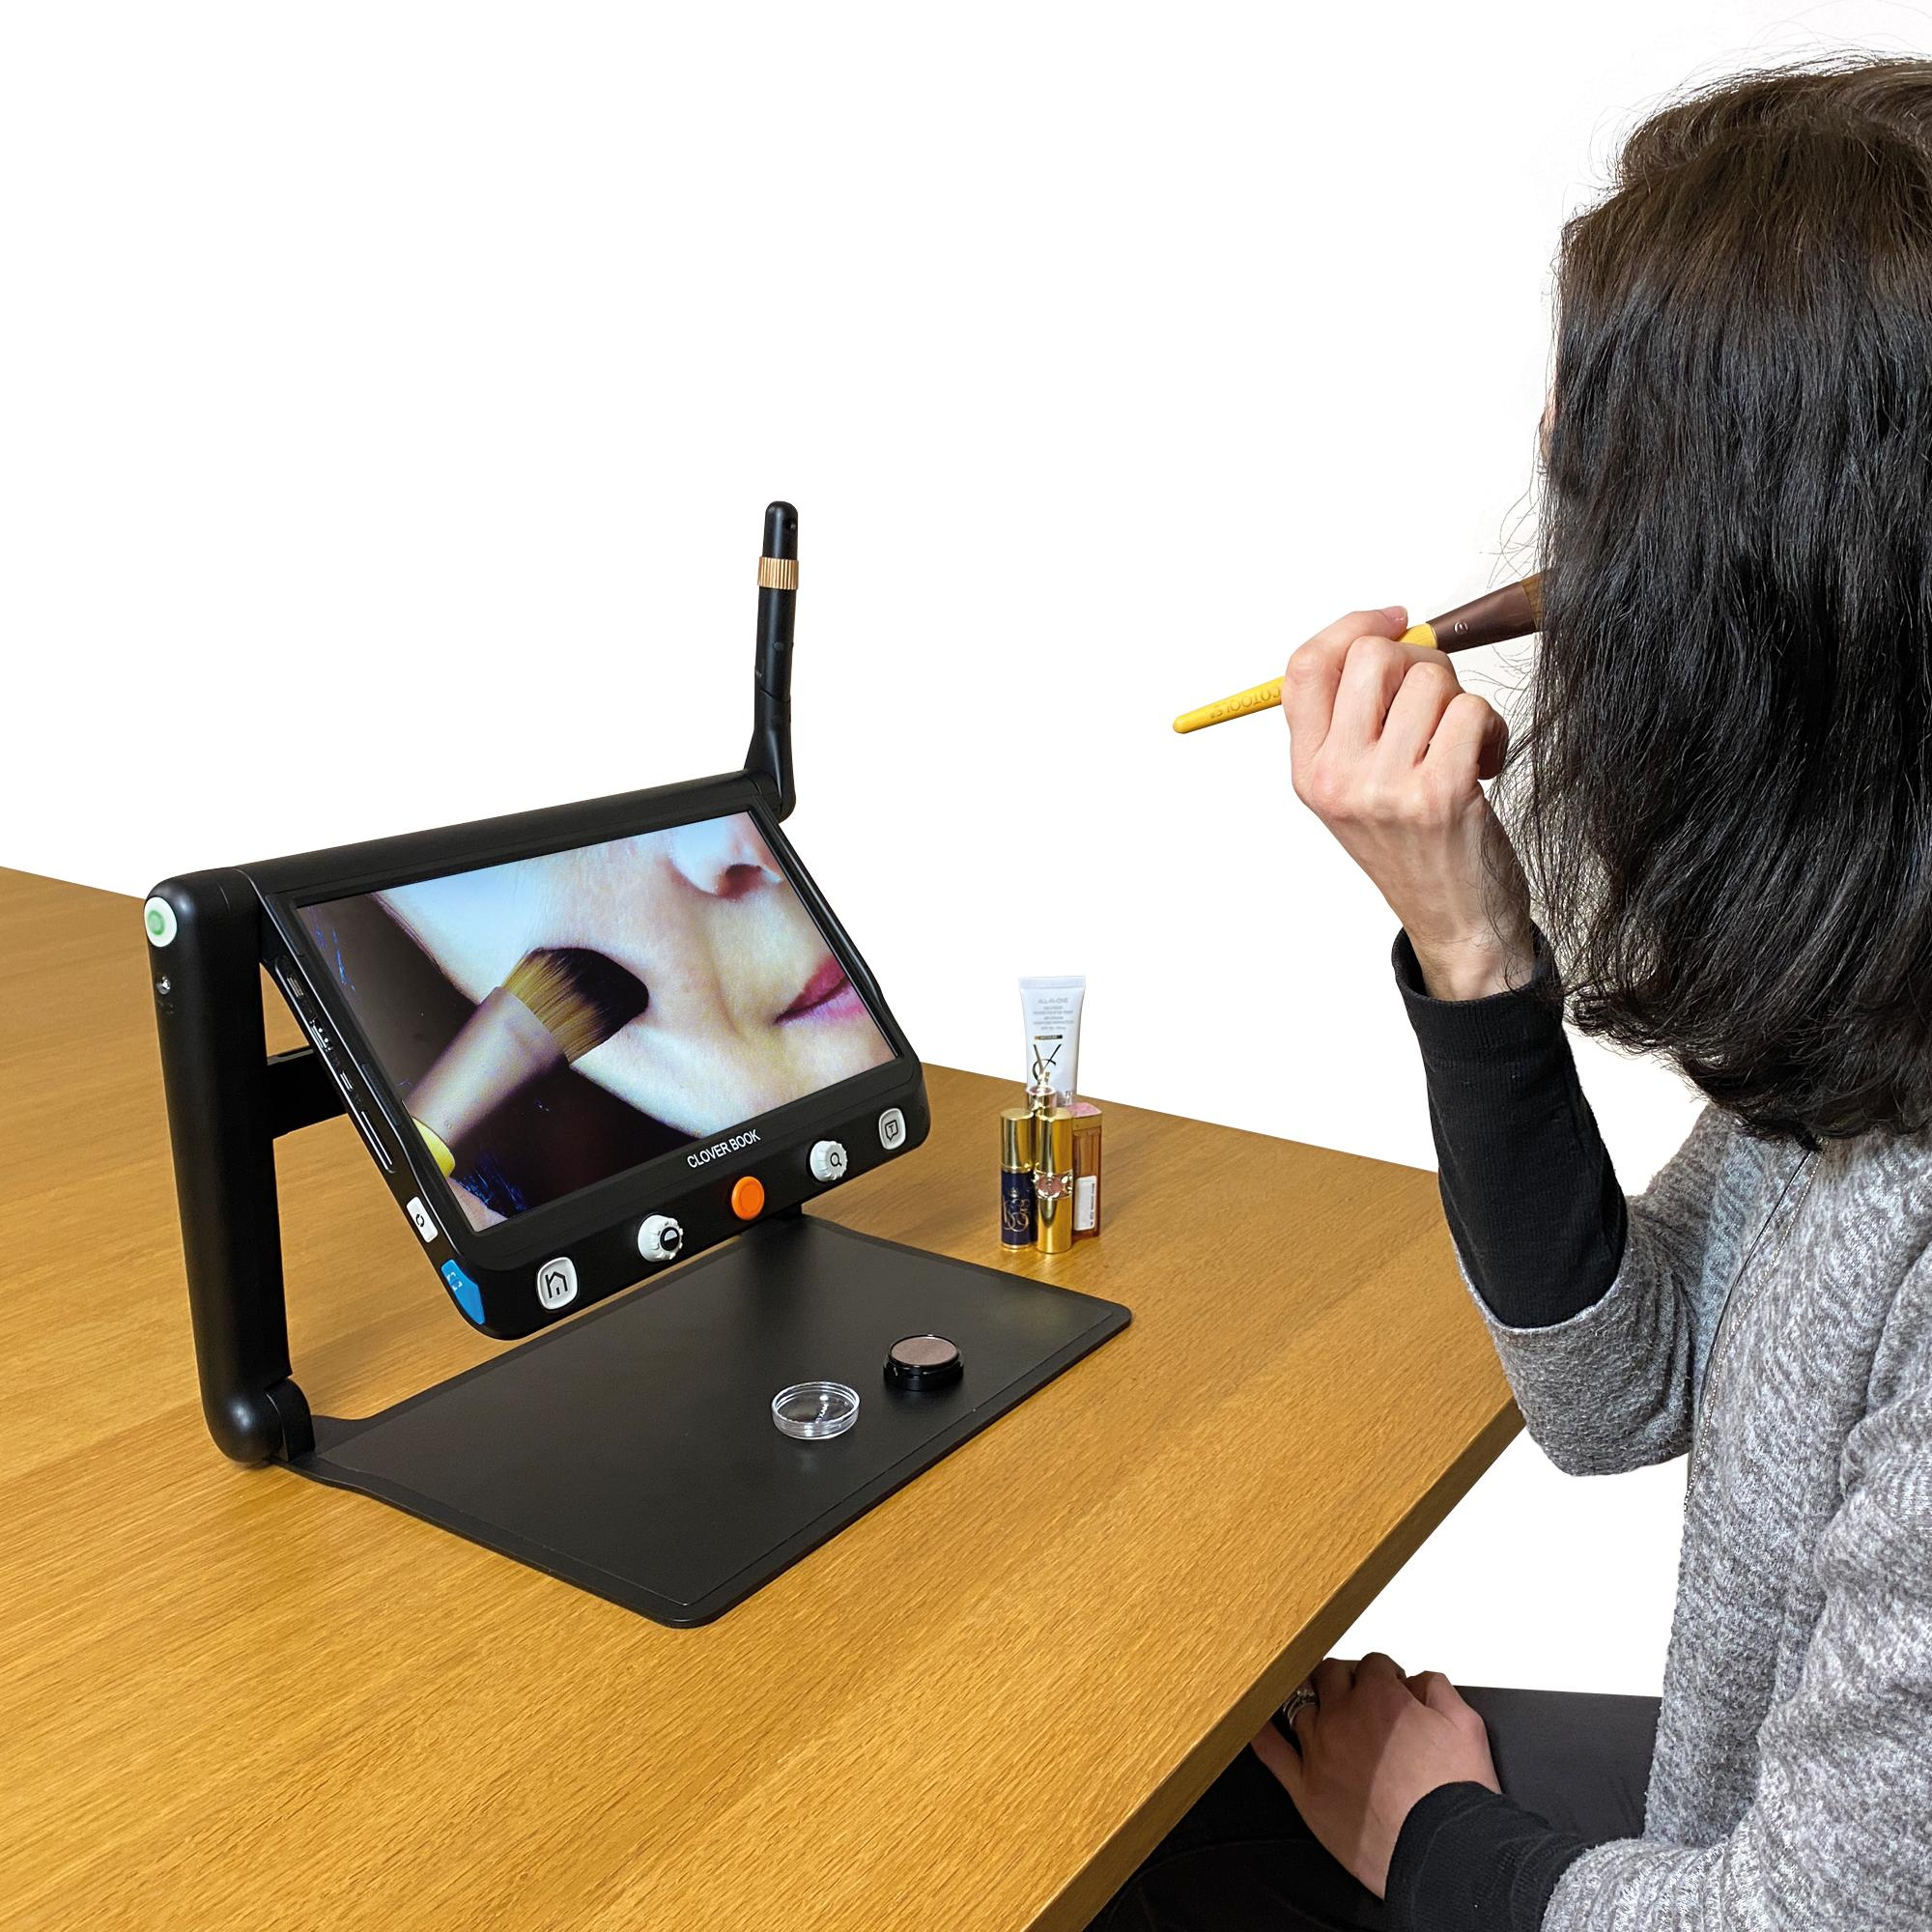 Clover Book with distance camera being used by a lady for applying makeup